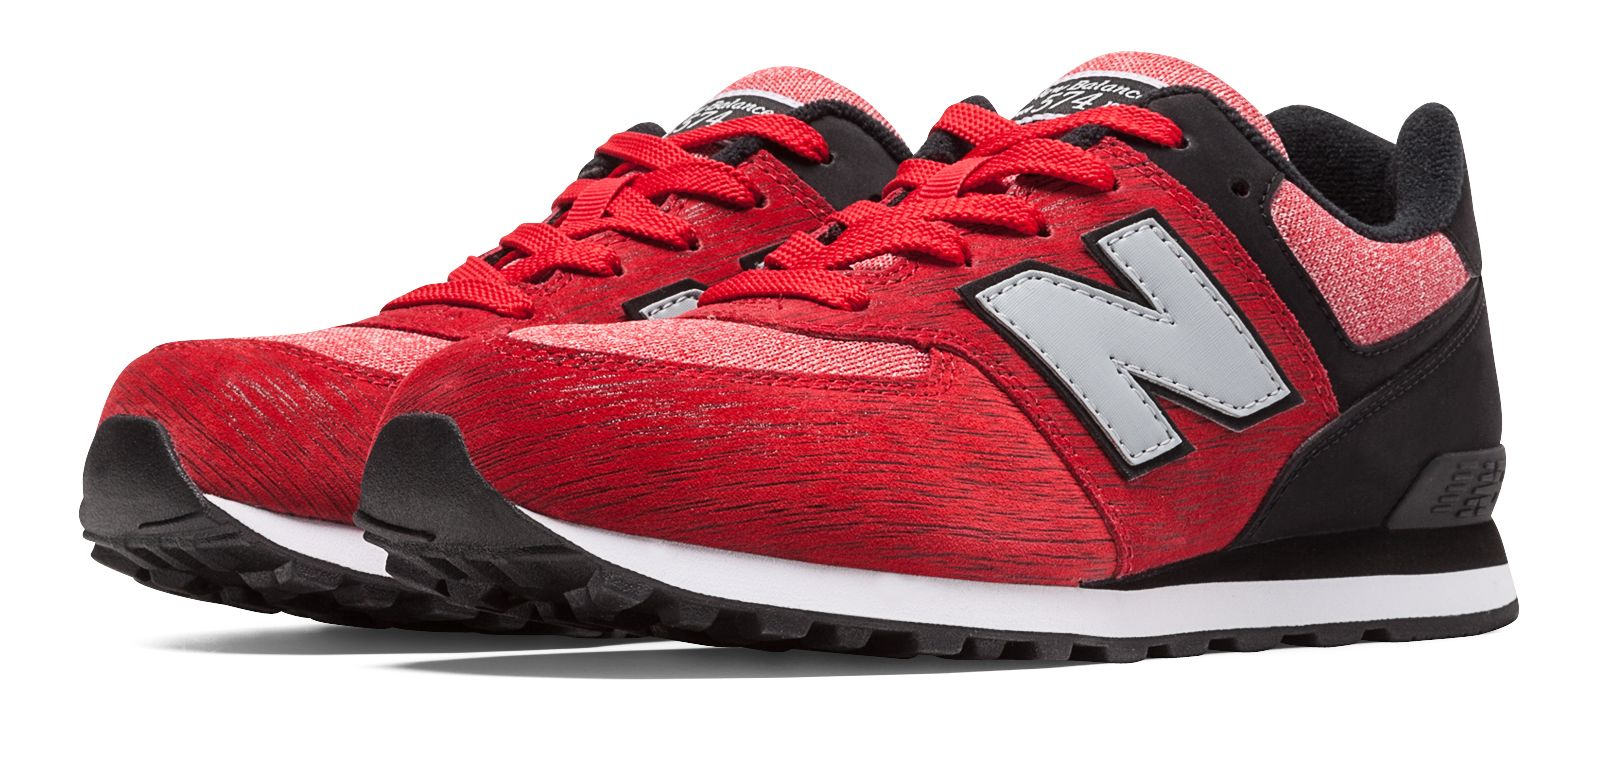 Boys Shoes | New Balance Boys Sneakers up to 60% Off | Joe\u0027s Official New  Balance Outlet